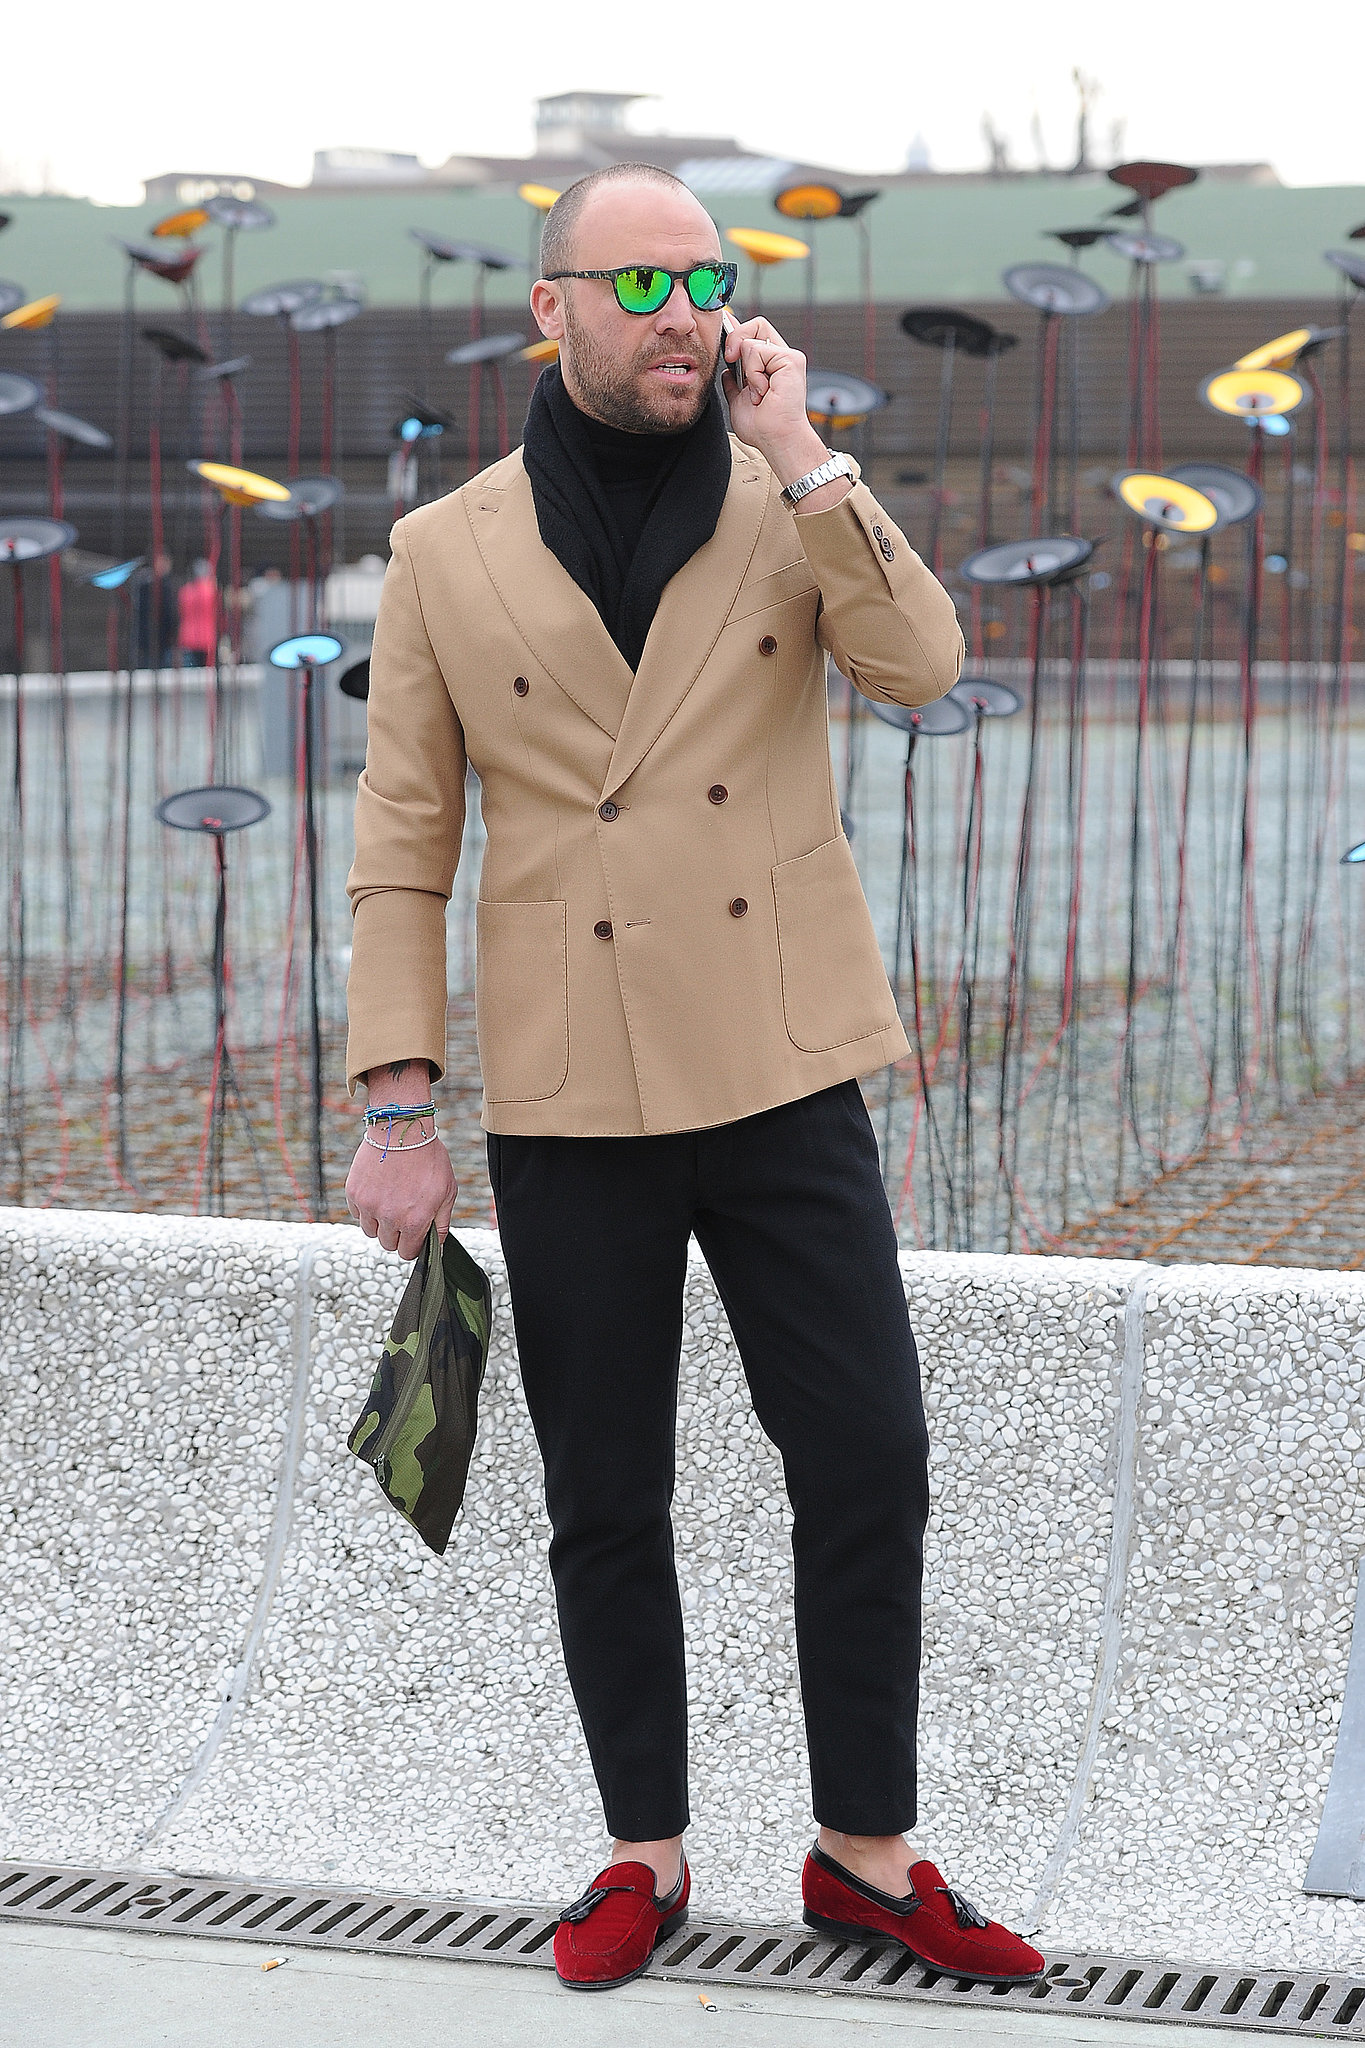 We can't decide what we love more: the jacket, the shades, the clutch, or those shoes — this guy nailed it.